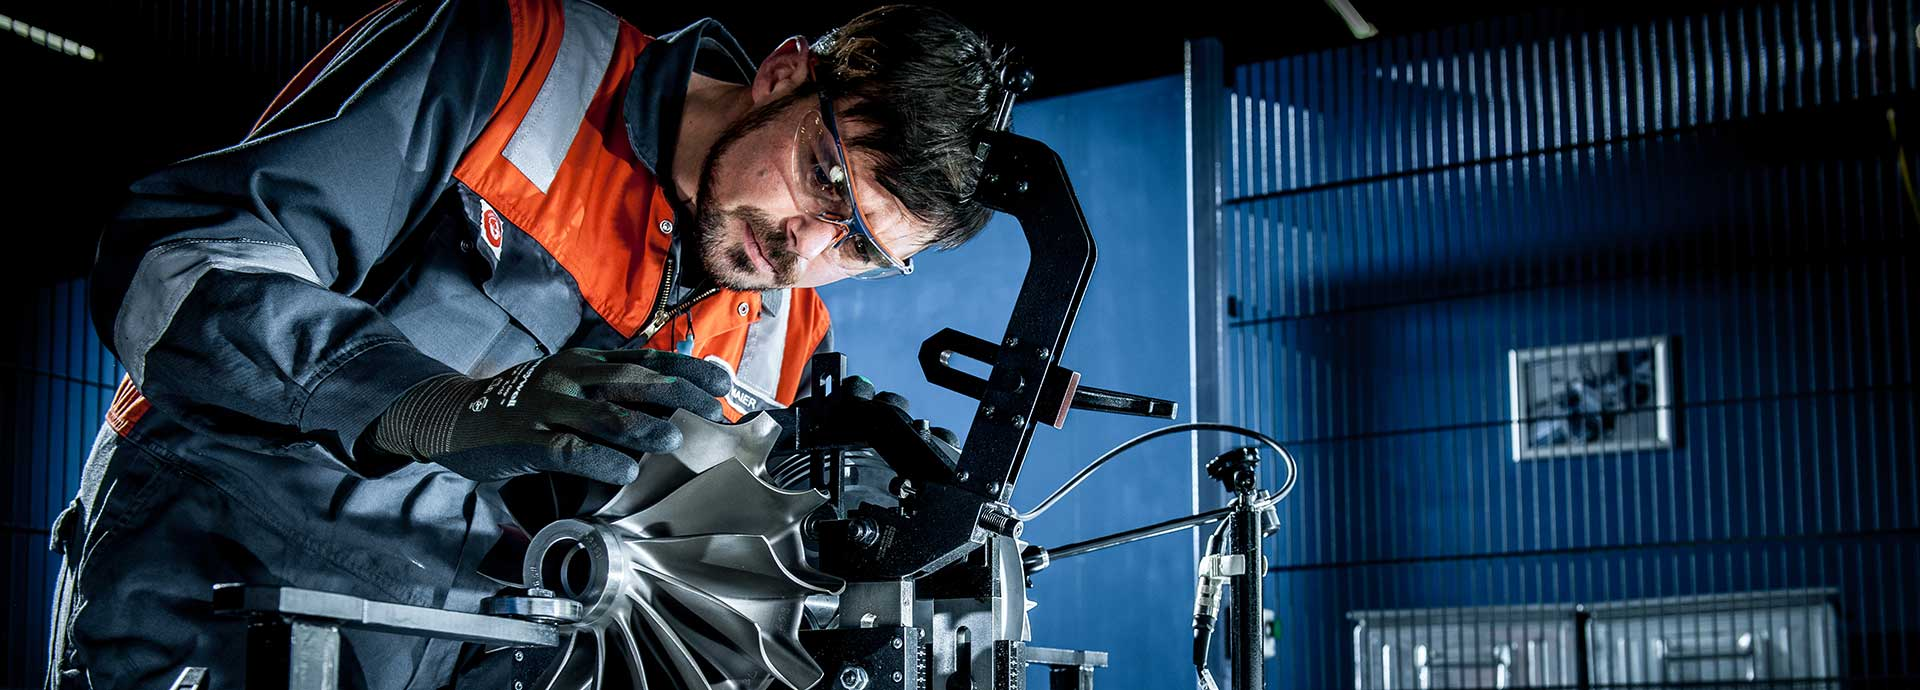 One-stop shop for engine and turbocharger maintenance